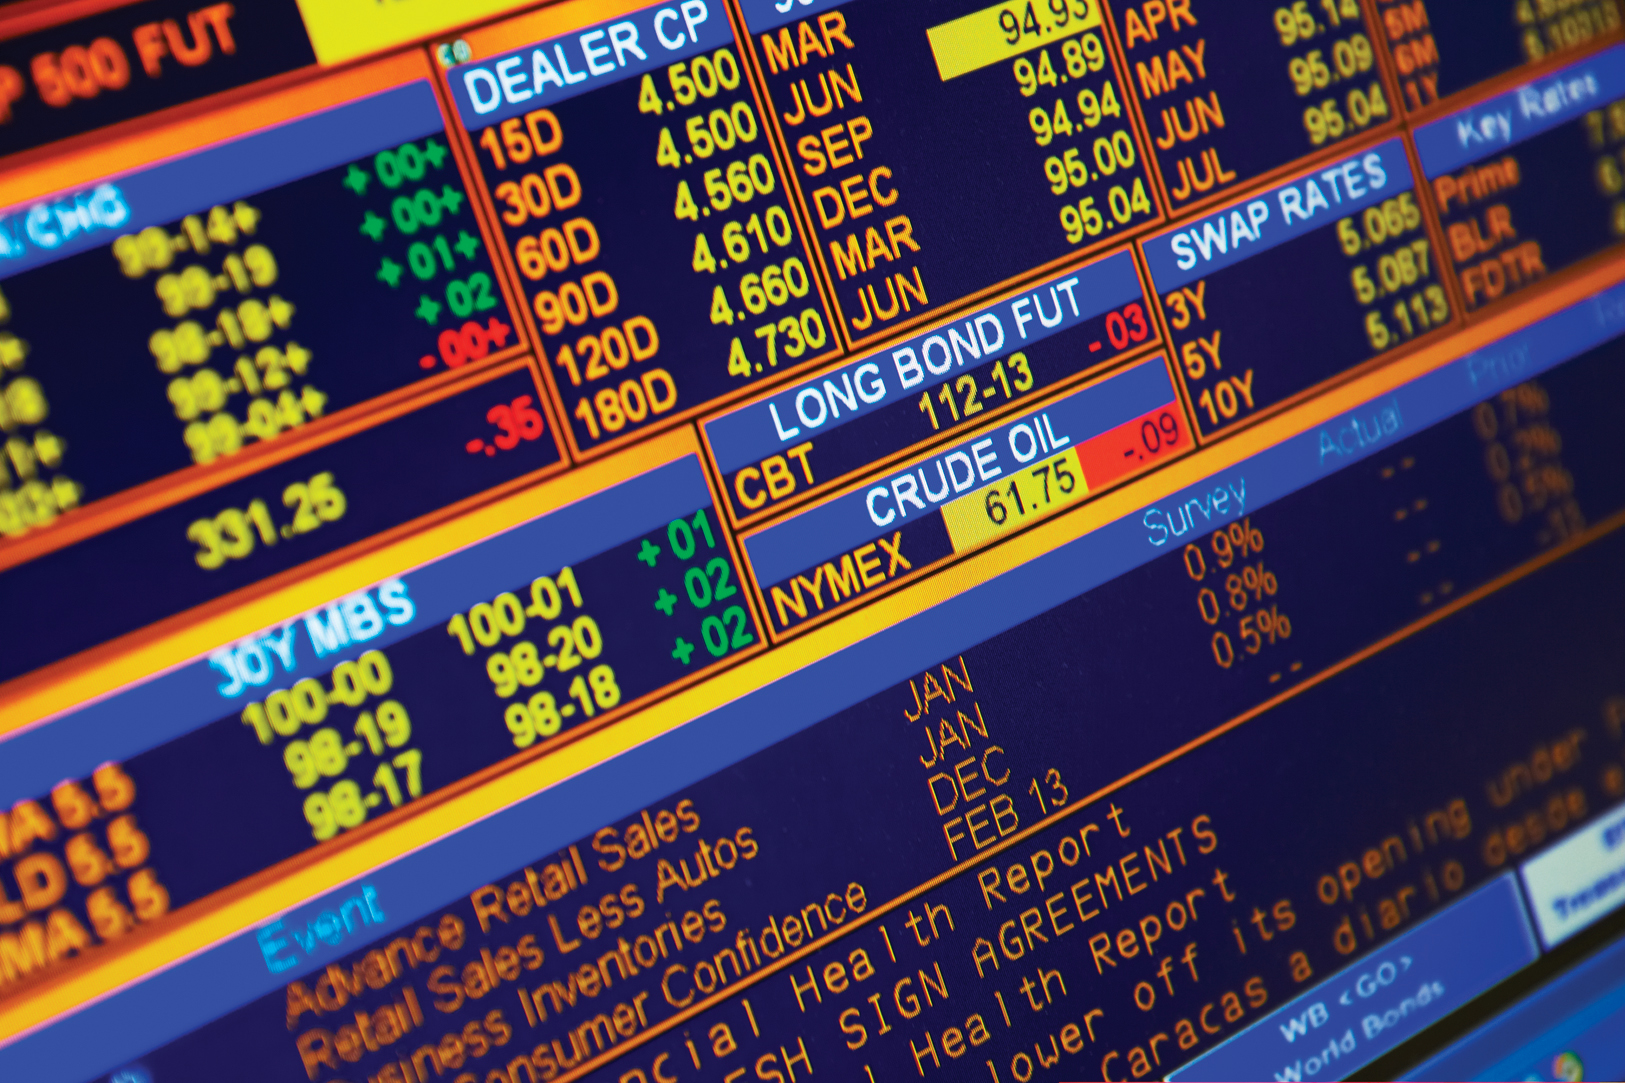 EDF Trading is a leader in the international wholesale energy markets.